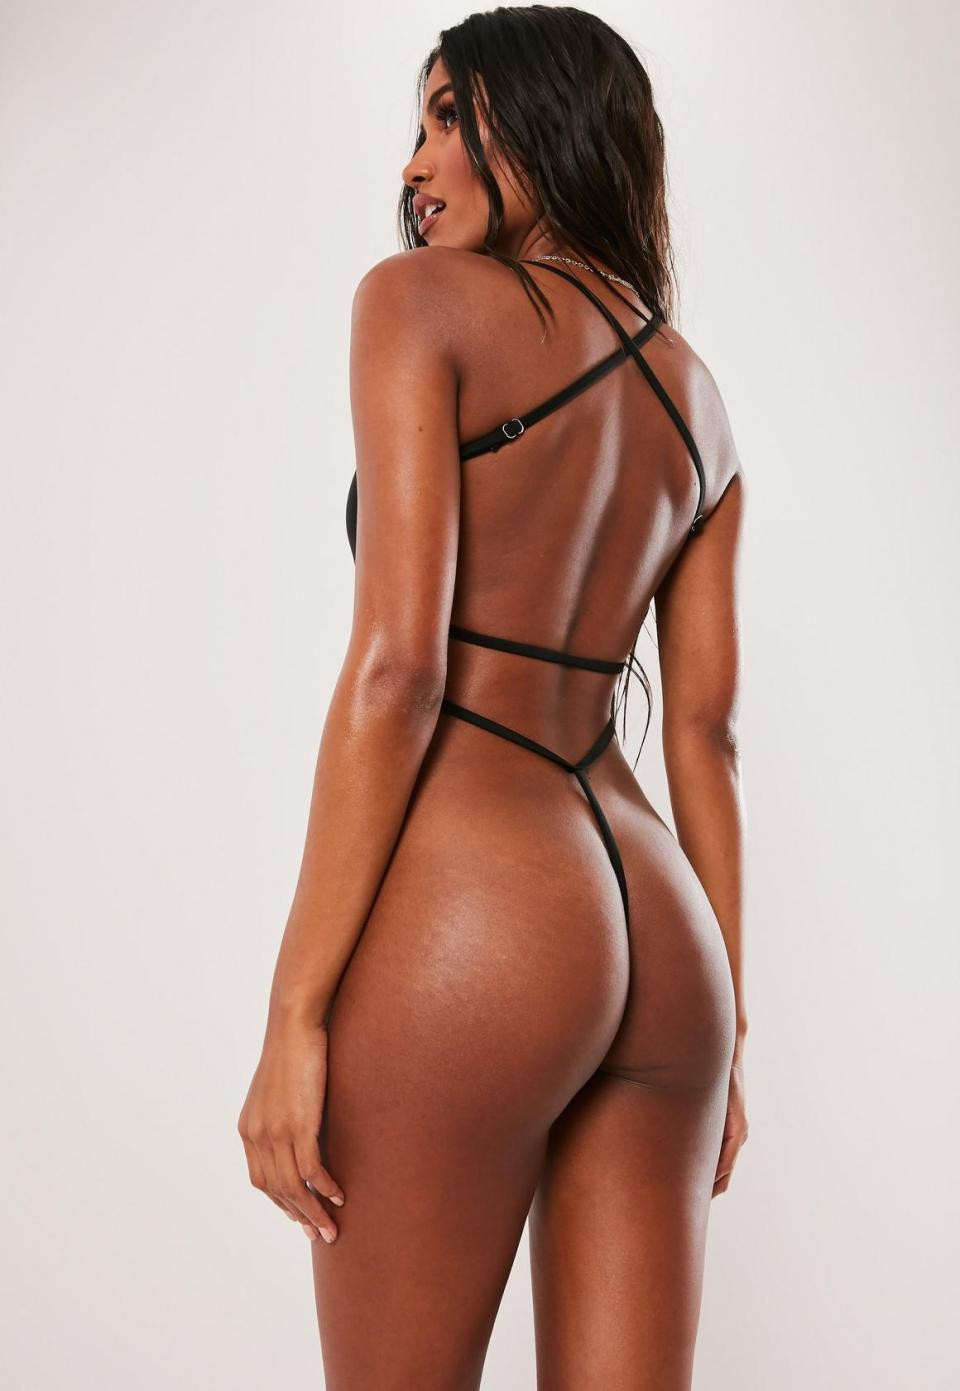 Ladies, would you rock this thong swimsuit that will leave your backside completely exposed? (Photos)